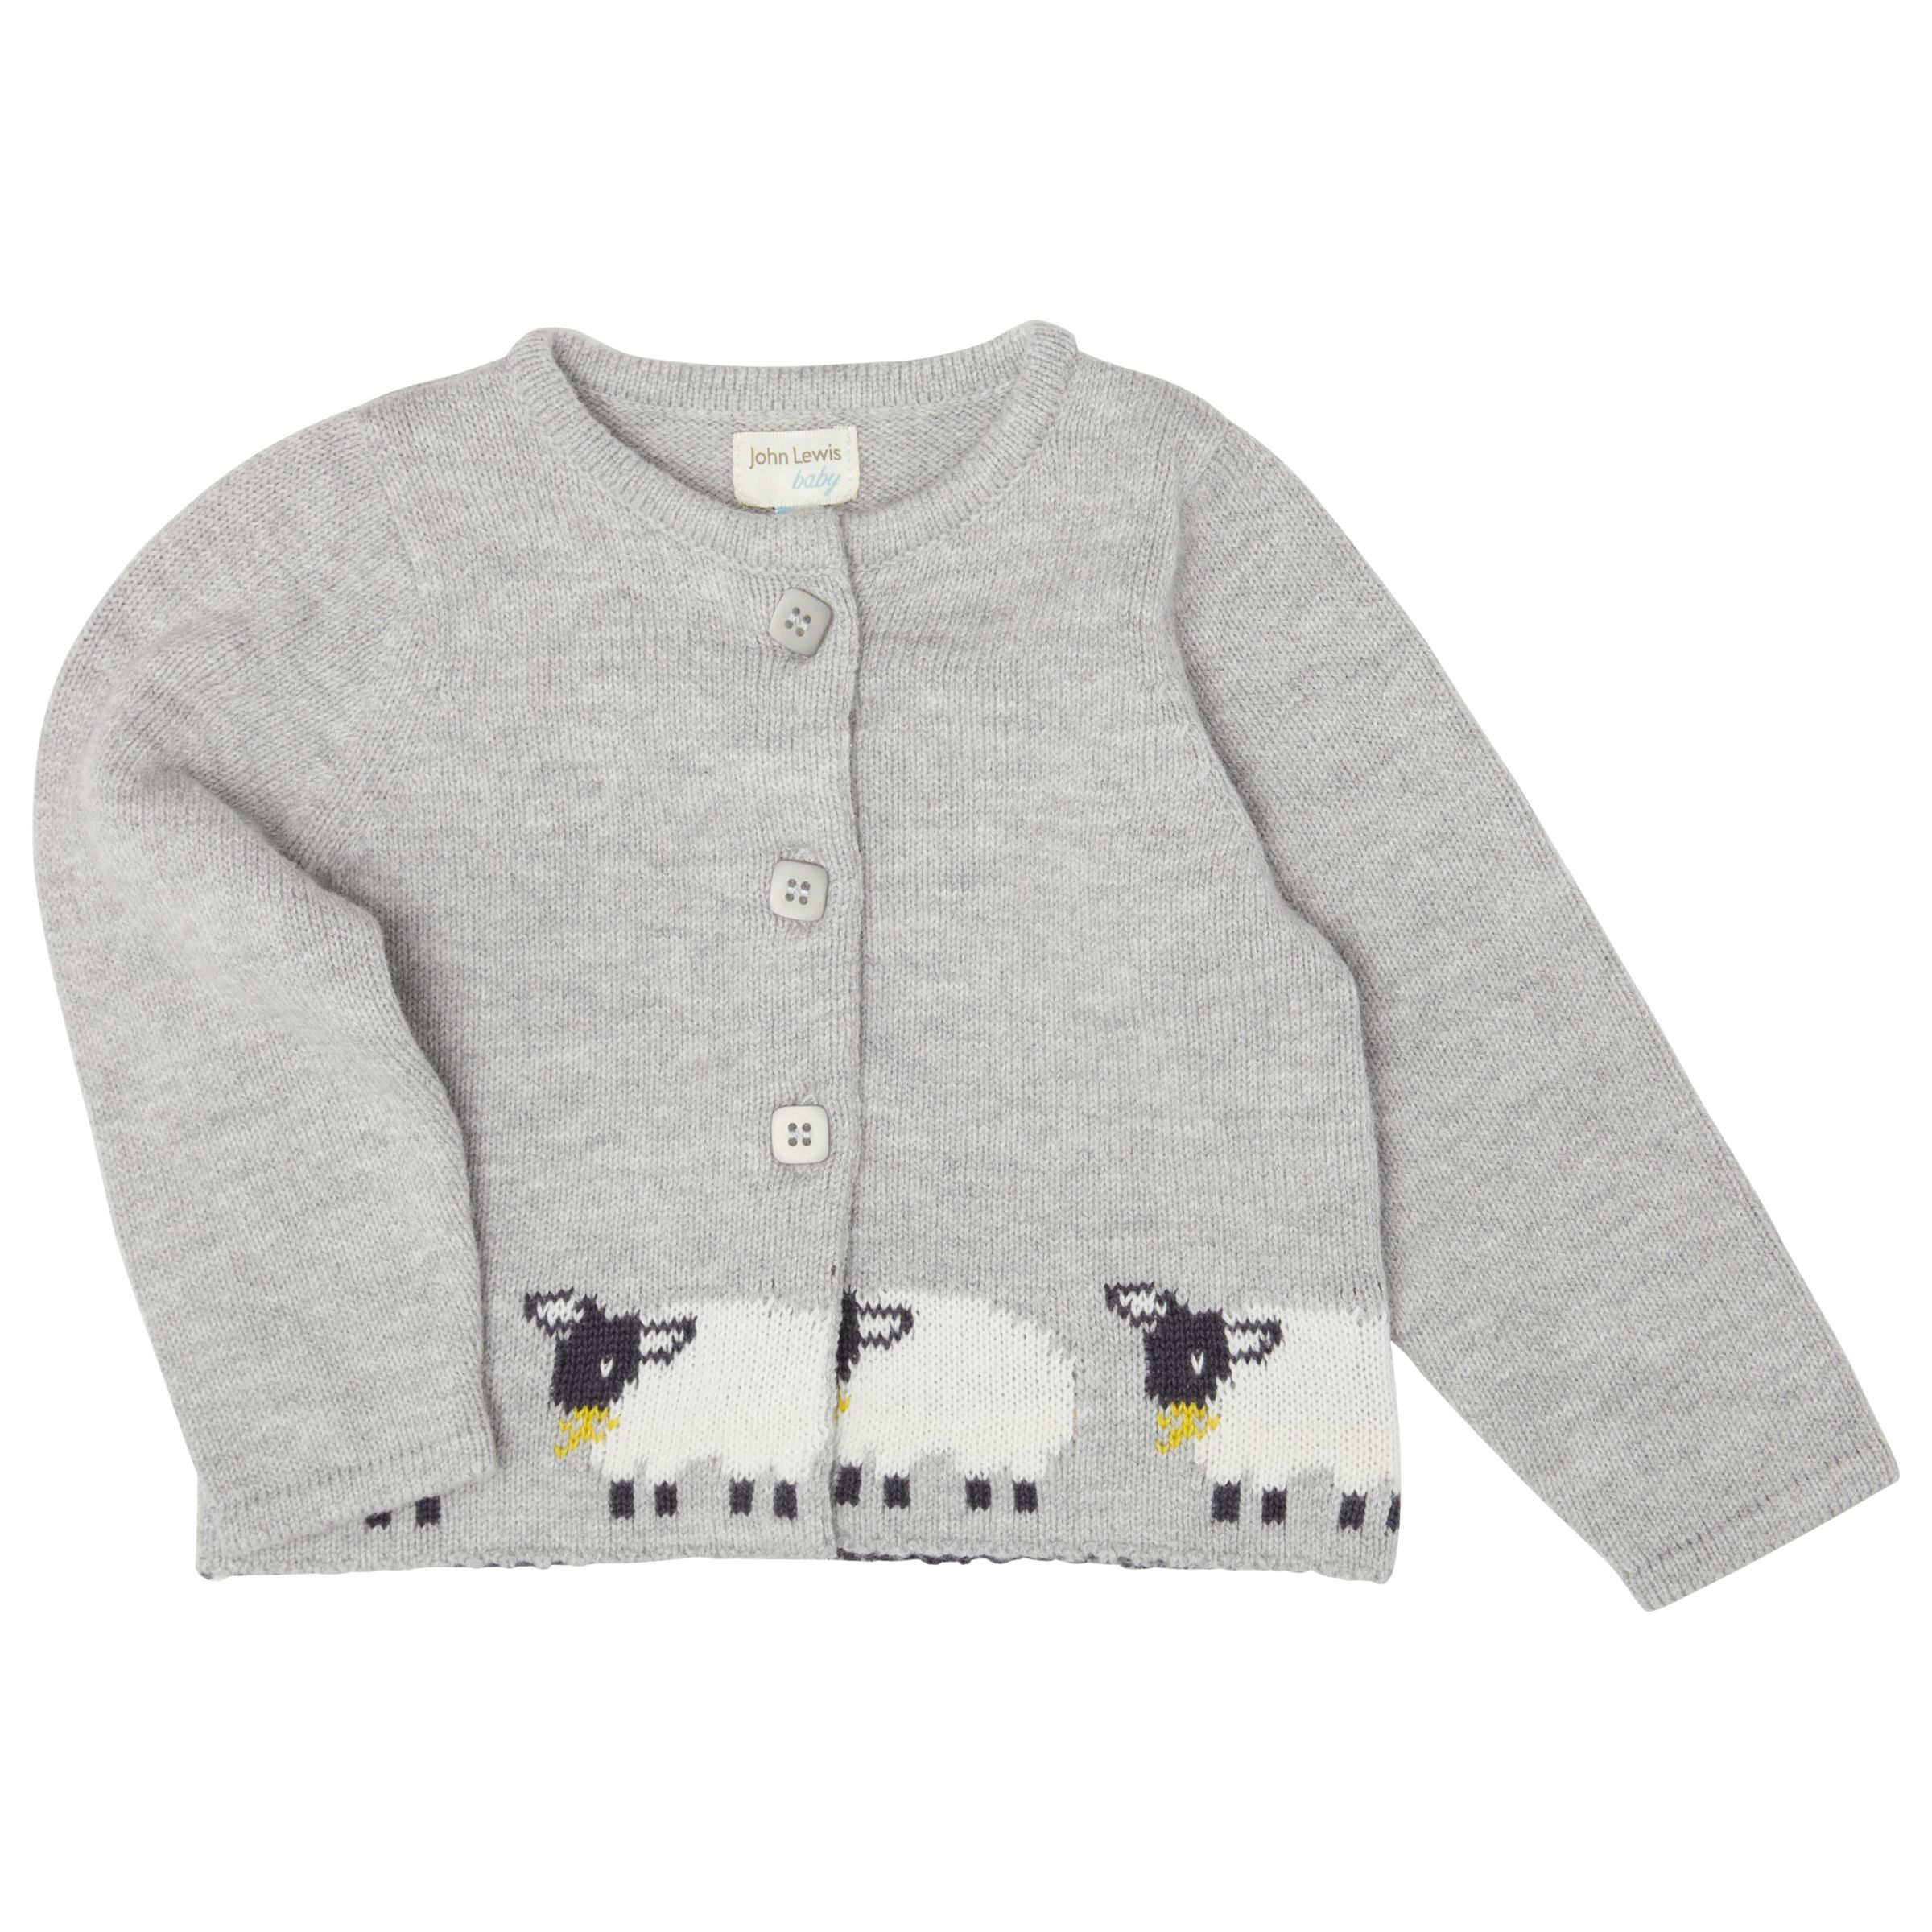 Buy John Lewis Babys Knit Sheep Cardigan, Grey John Lewis